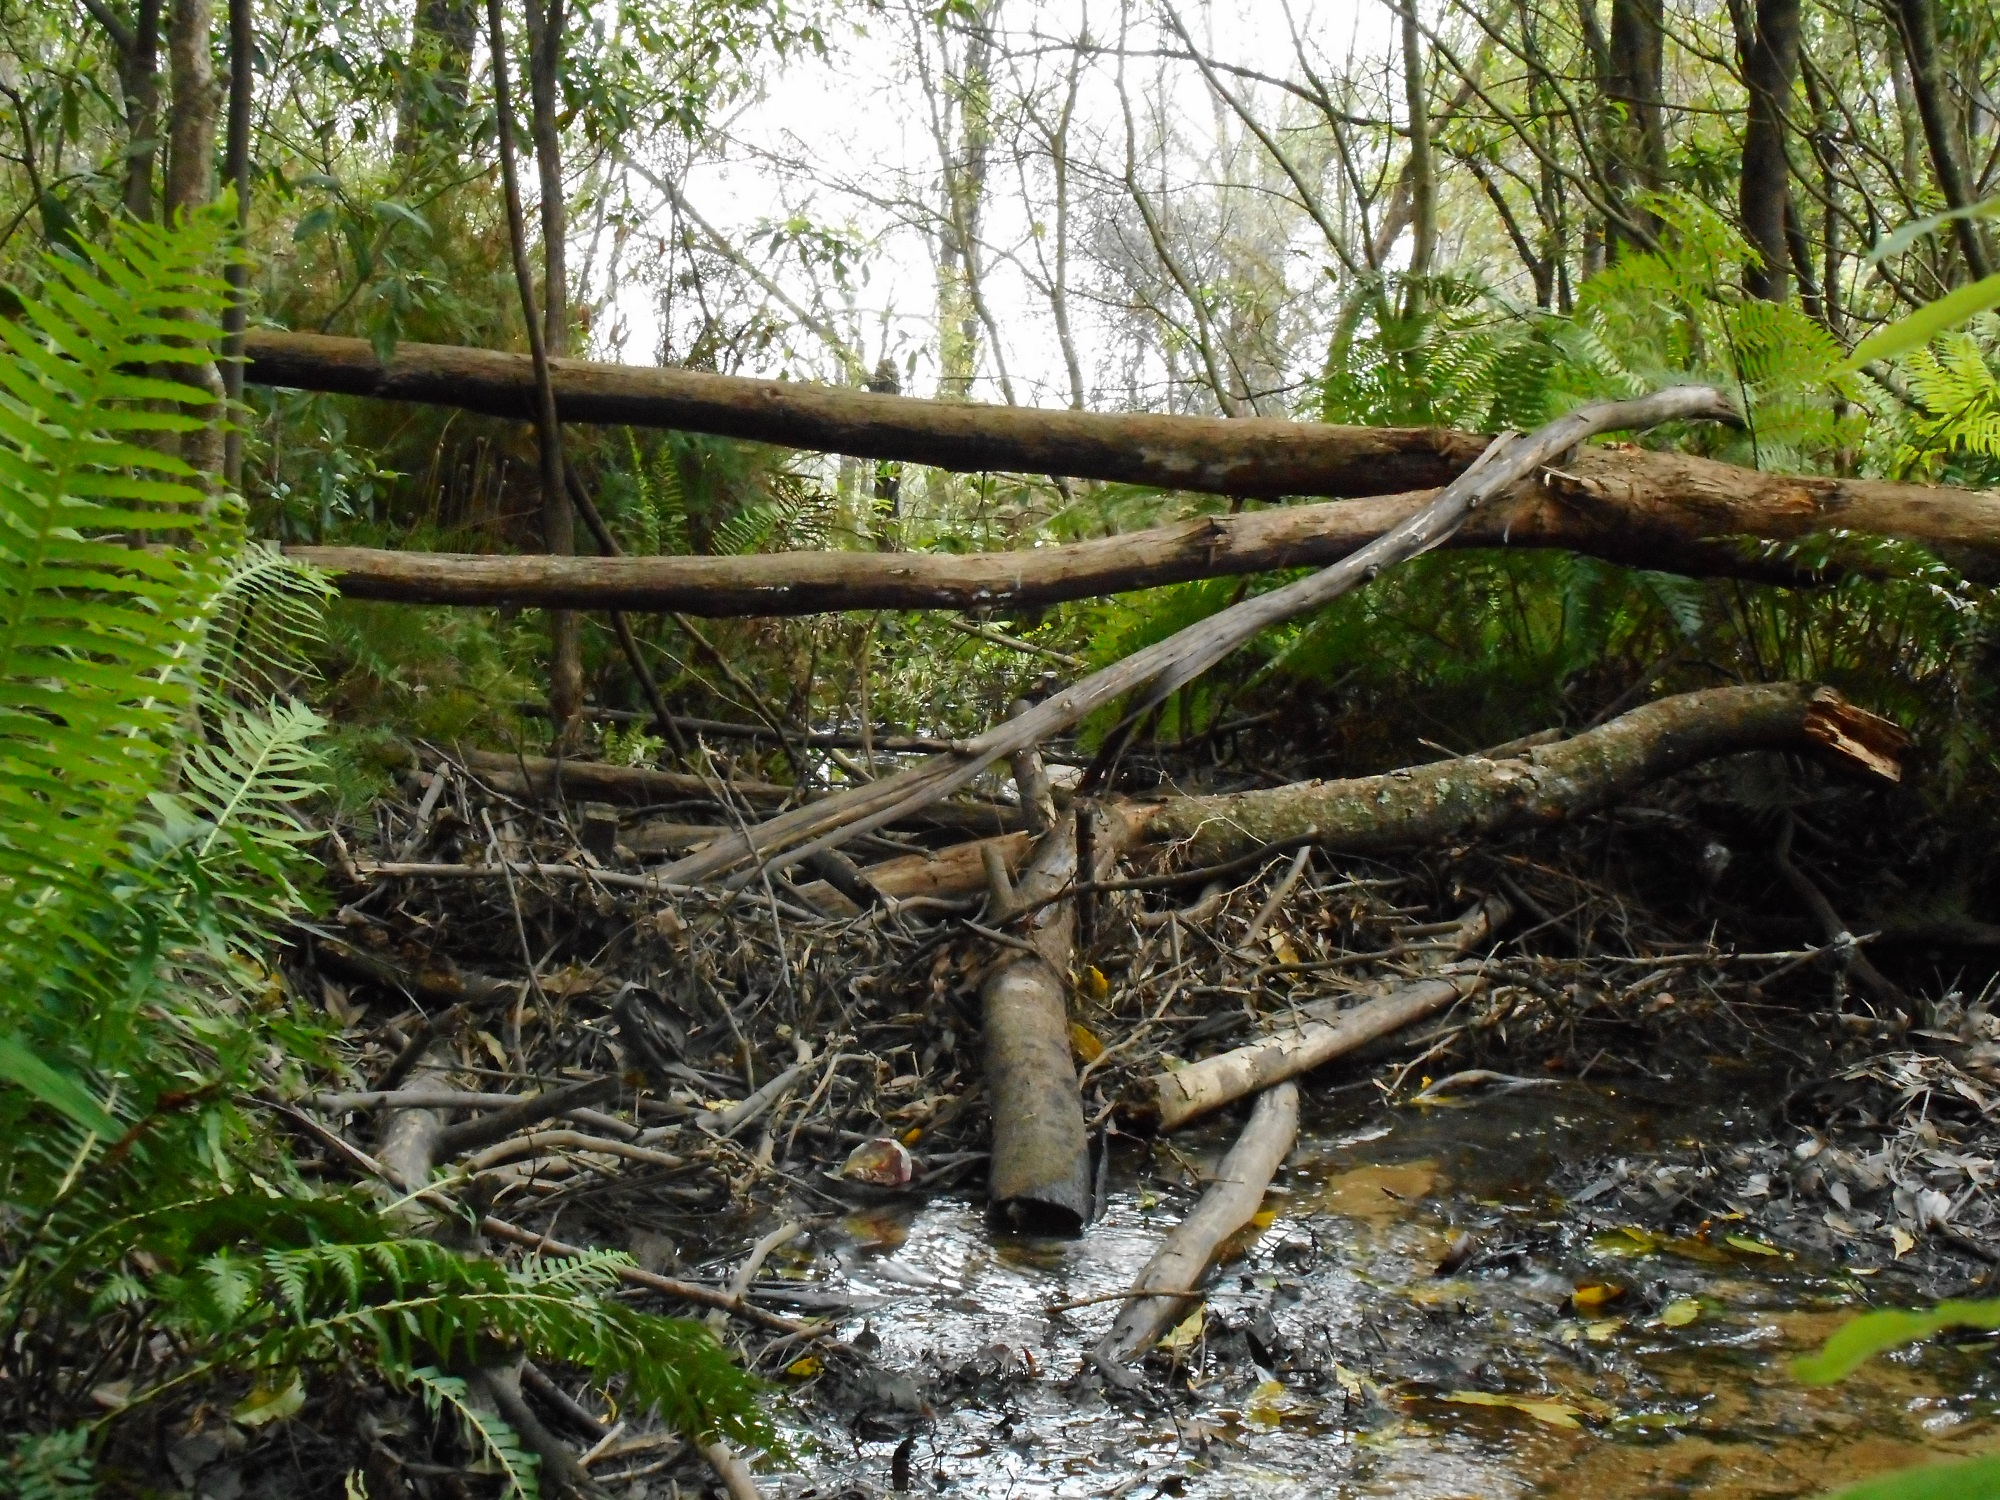 Natural debris, good bug habitat, Lawson Creek, October 2018